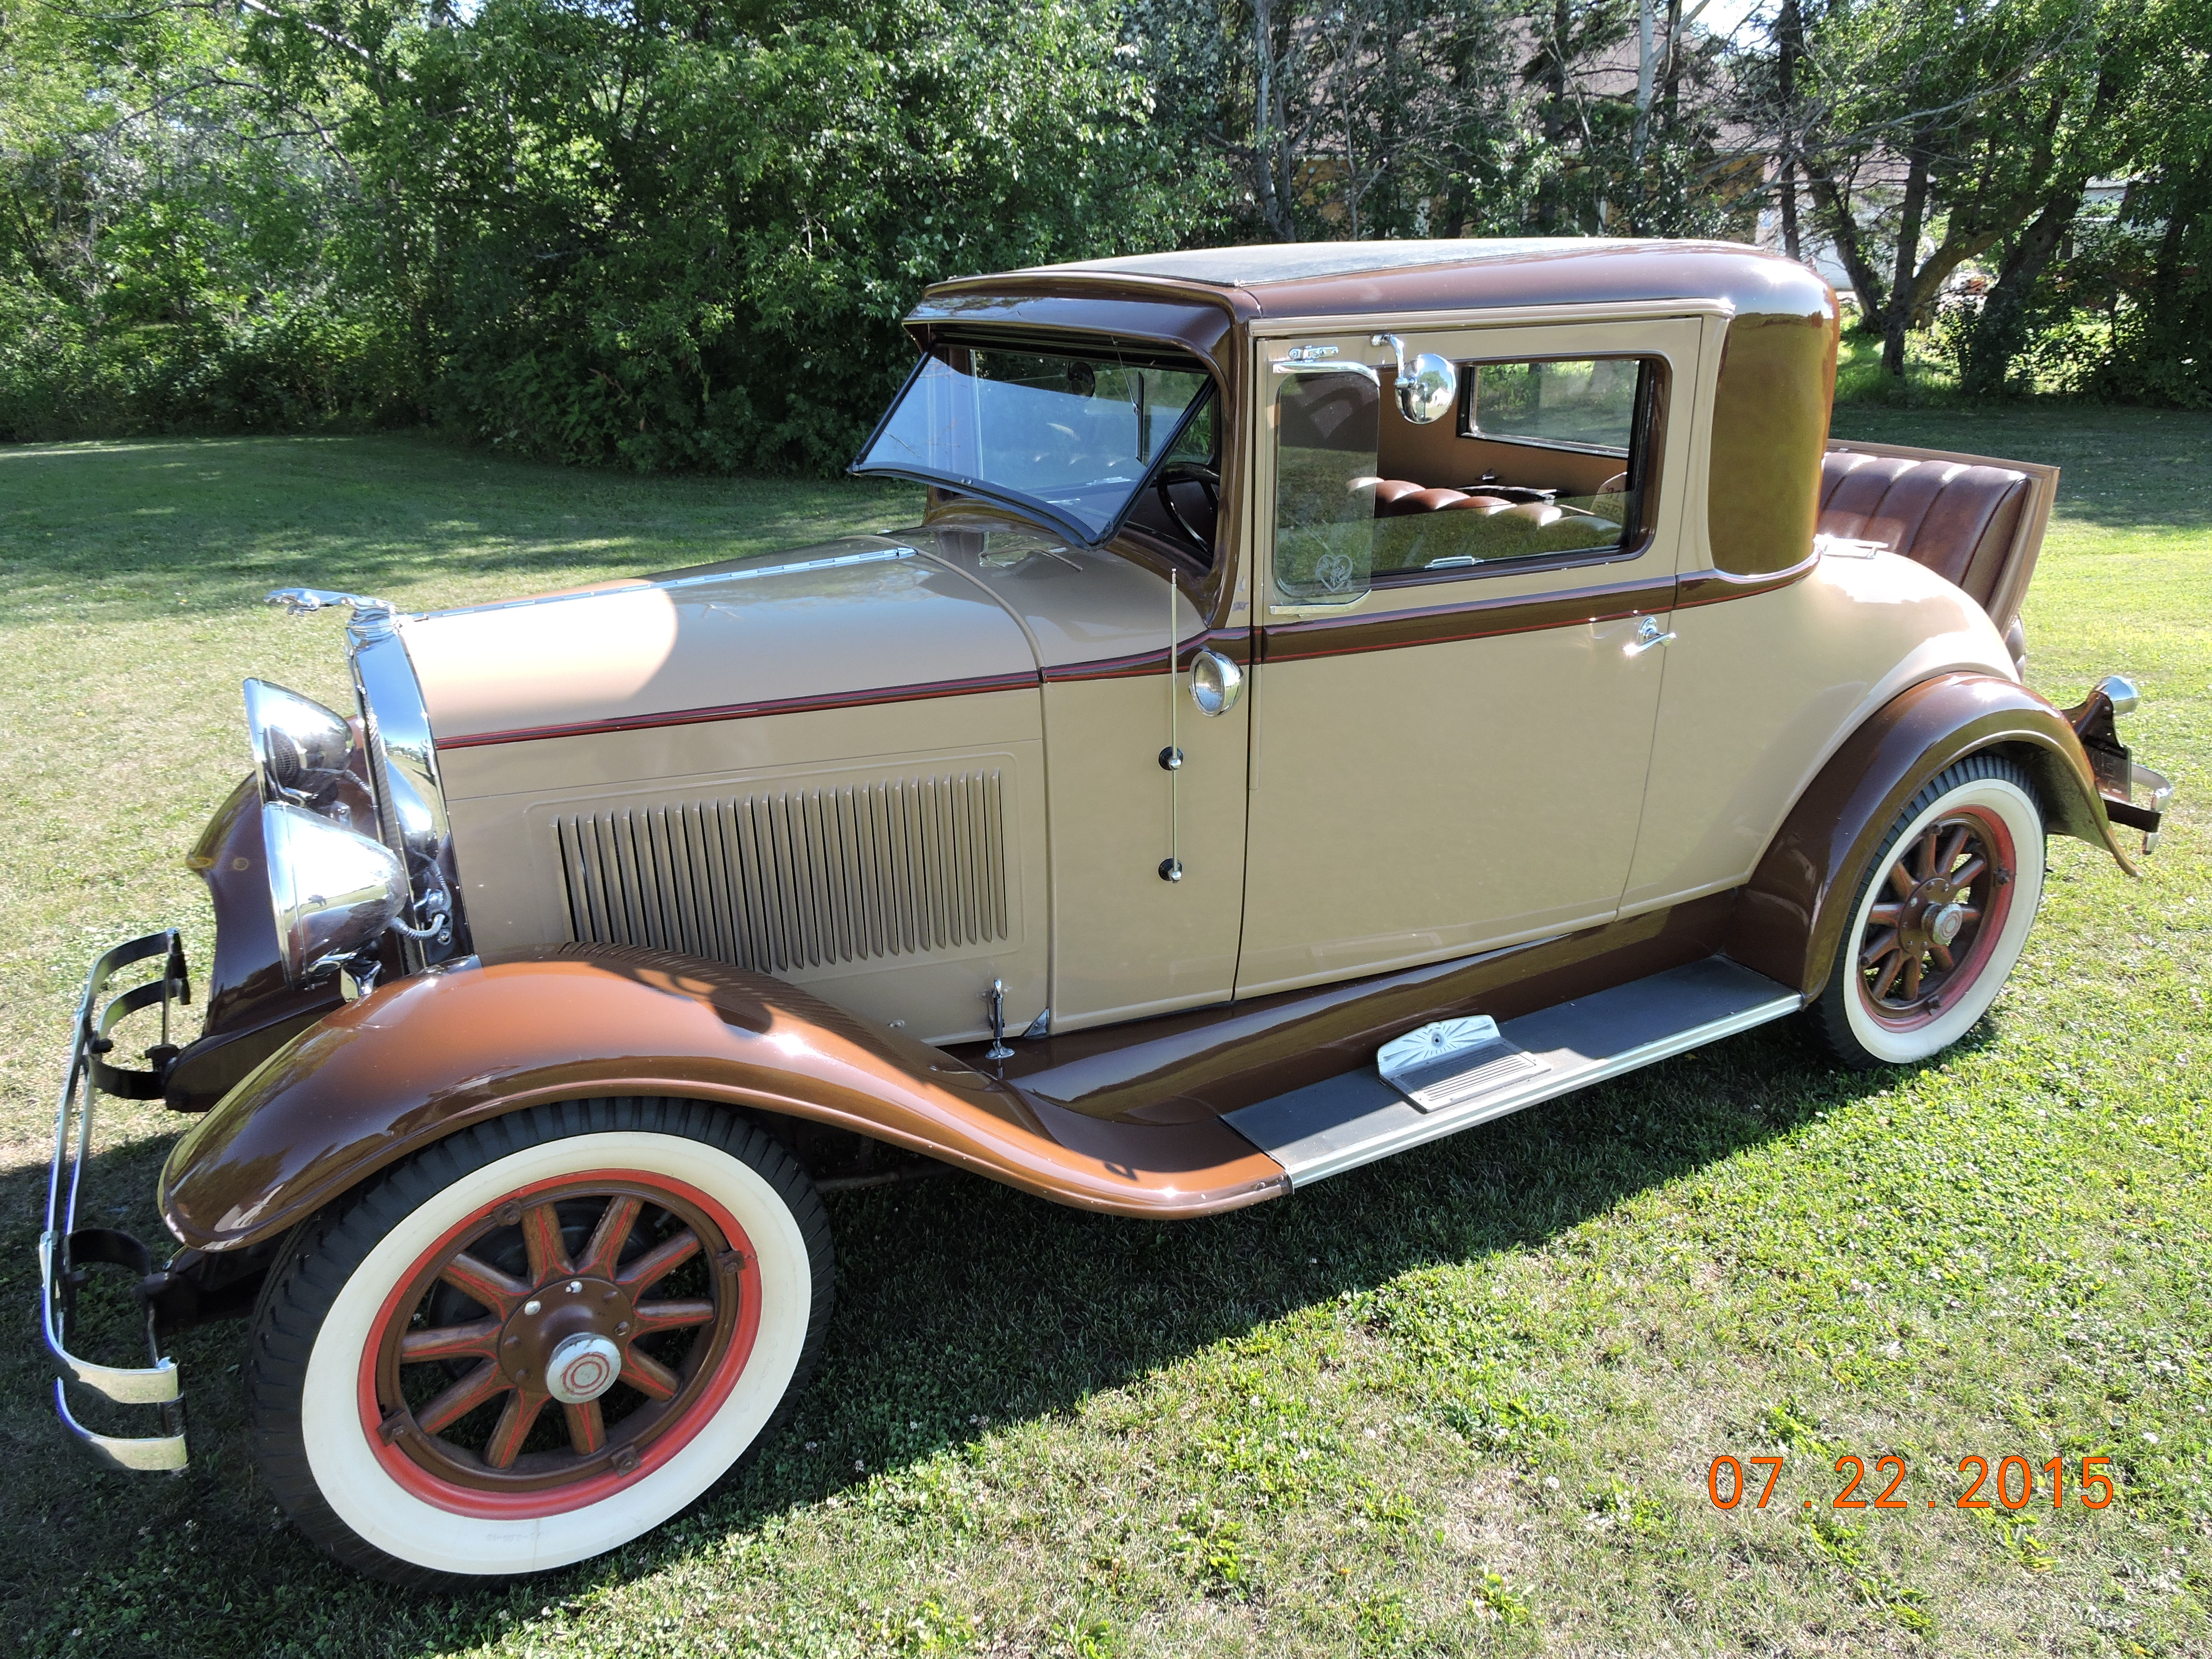 An example of a fully restored 1932 Essex Super Six, this being the two seater with rumble seat body style. (Picture courtesy jimsclassiccorner.com)